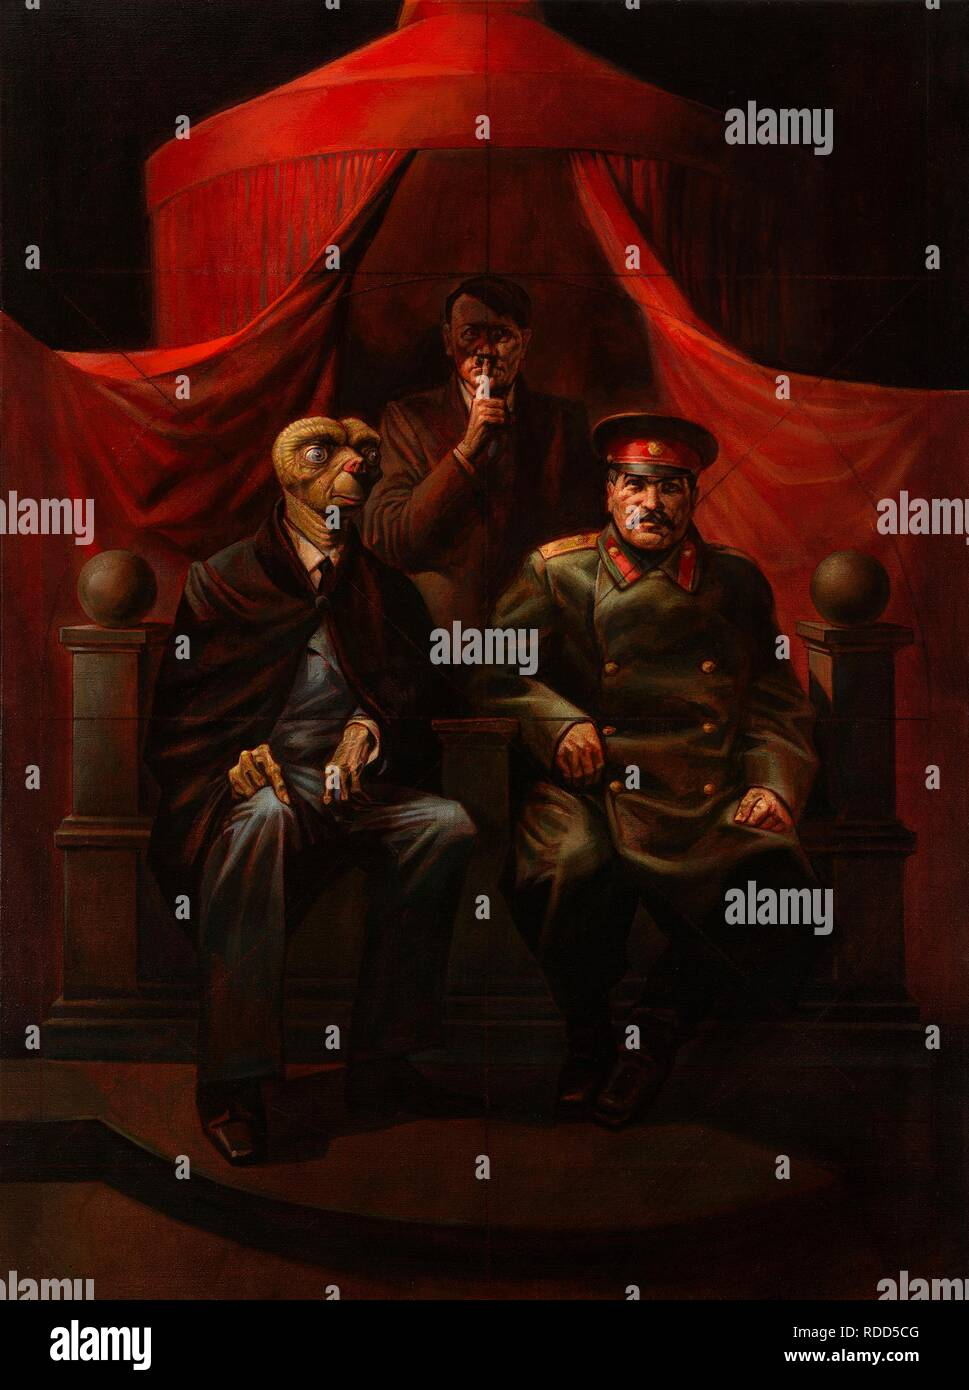 Yalta Conference, from the series 'Nostalgic Socialist Realism'. Museum: PRIVATE COLLECTION. Author: Komar and Melamid. - Stock Image